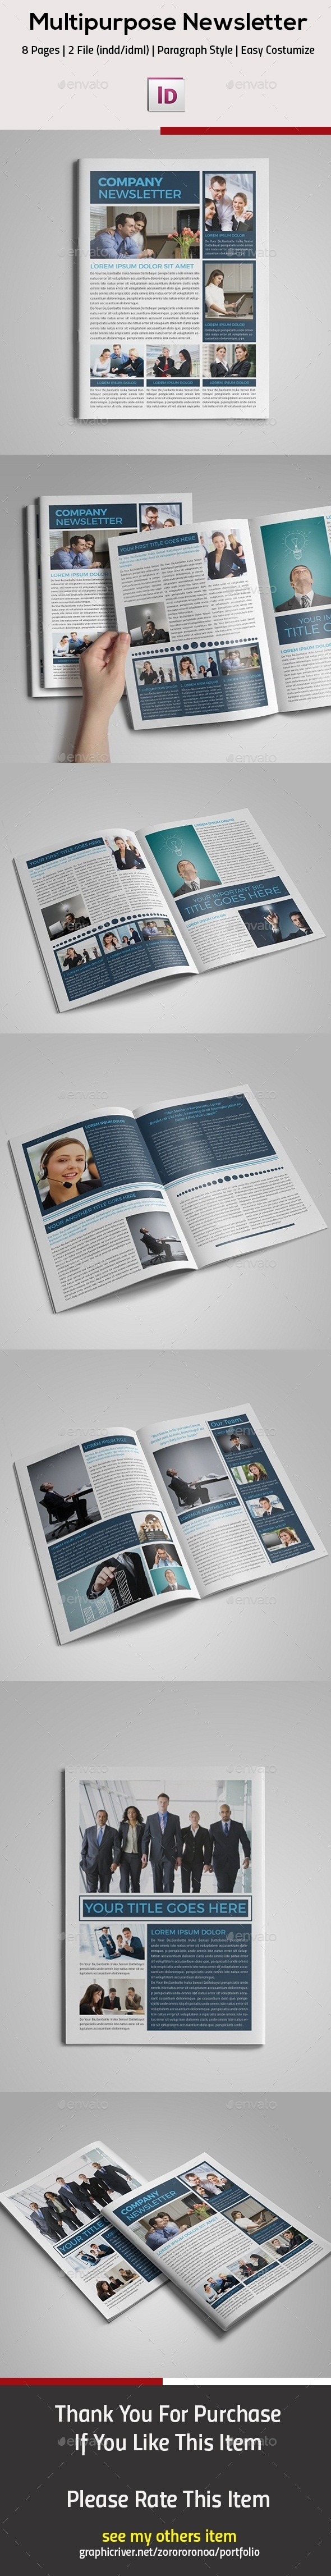 Multipurpose InDesign Newsletter - Newsletters Print Templates